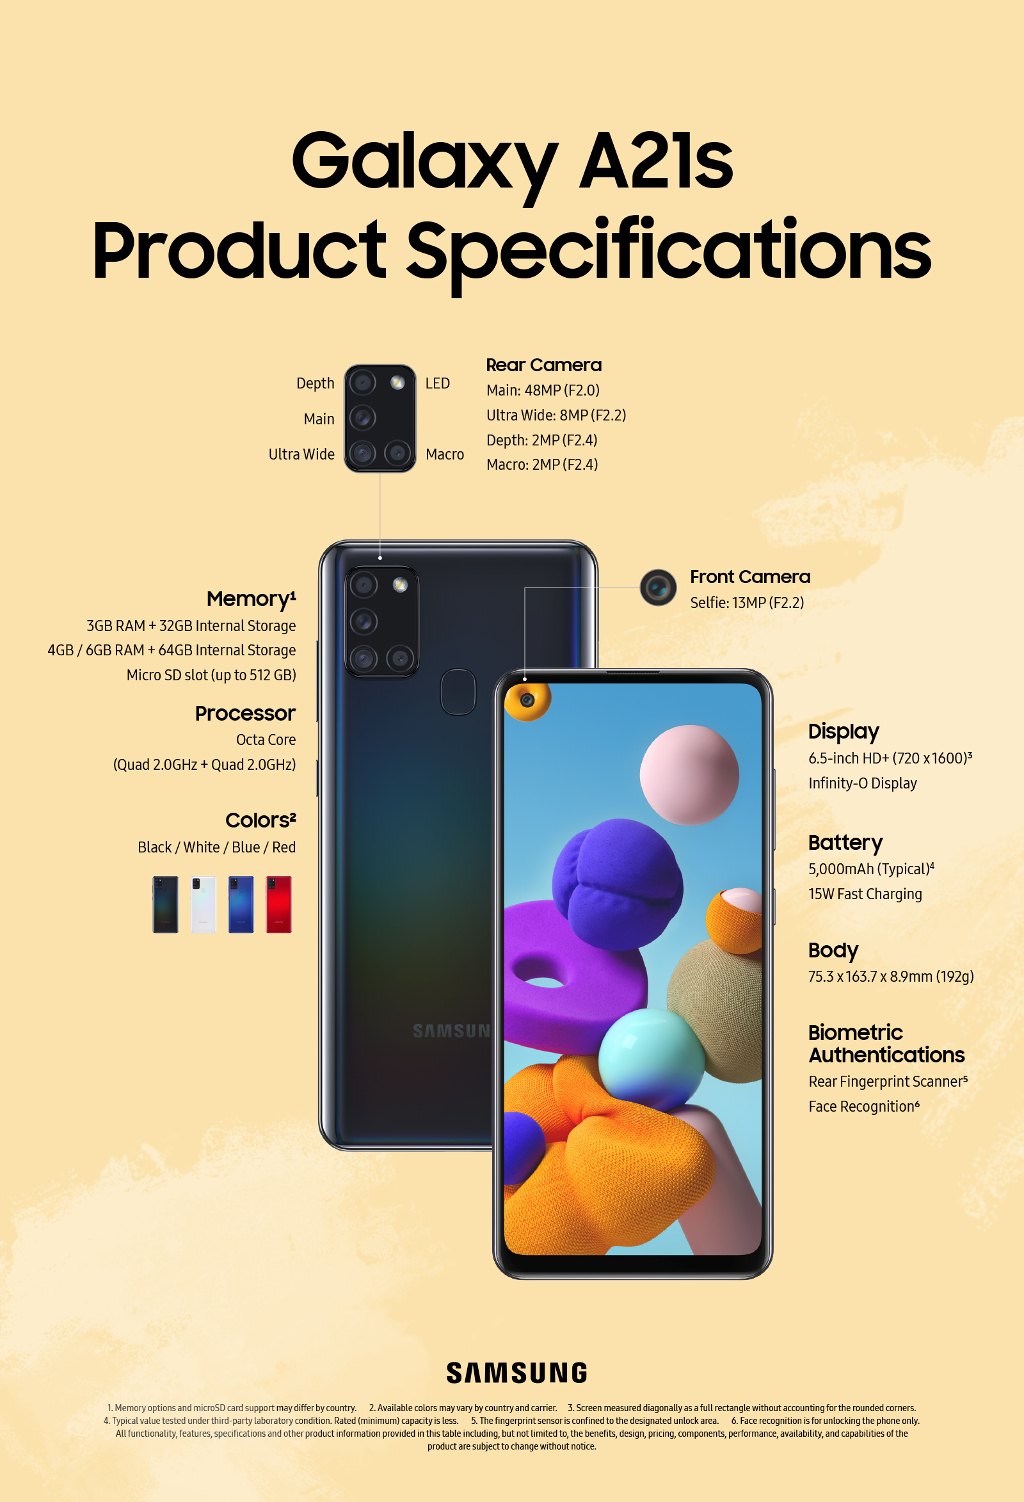 galaxya21s_product_specification